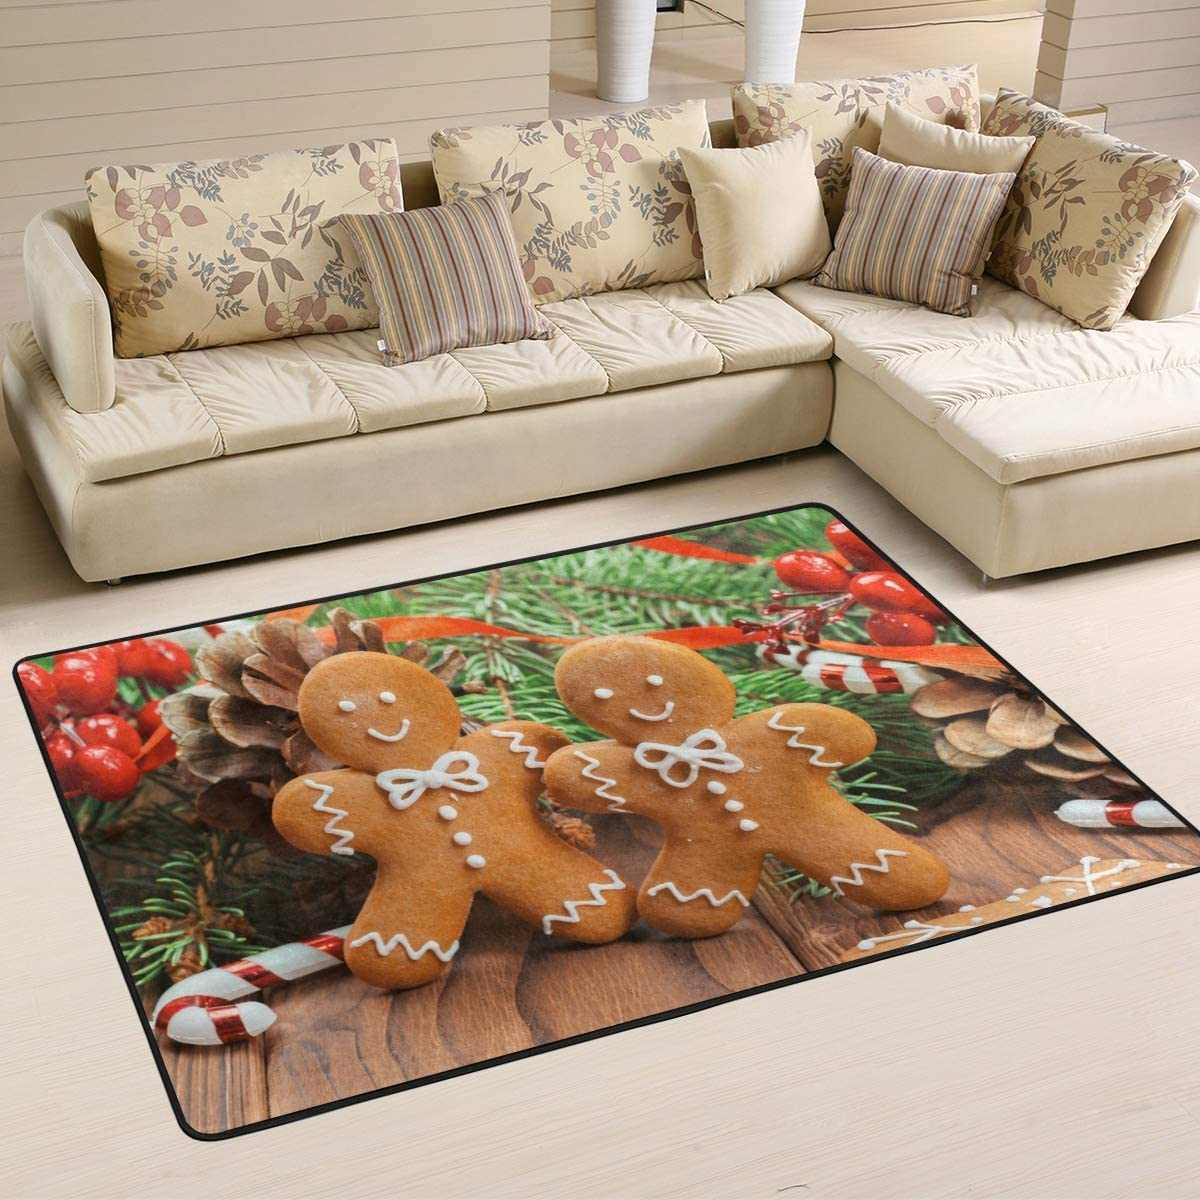 Wamika Christmas Gingerbread Man Cookies Doormat Wood Candy Indoor Outdoor Rug for Kitchen Living Room Bedroom Outside Patio Inside Entry Way, 6 x 4